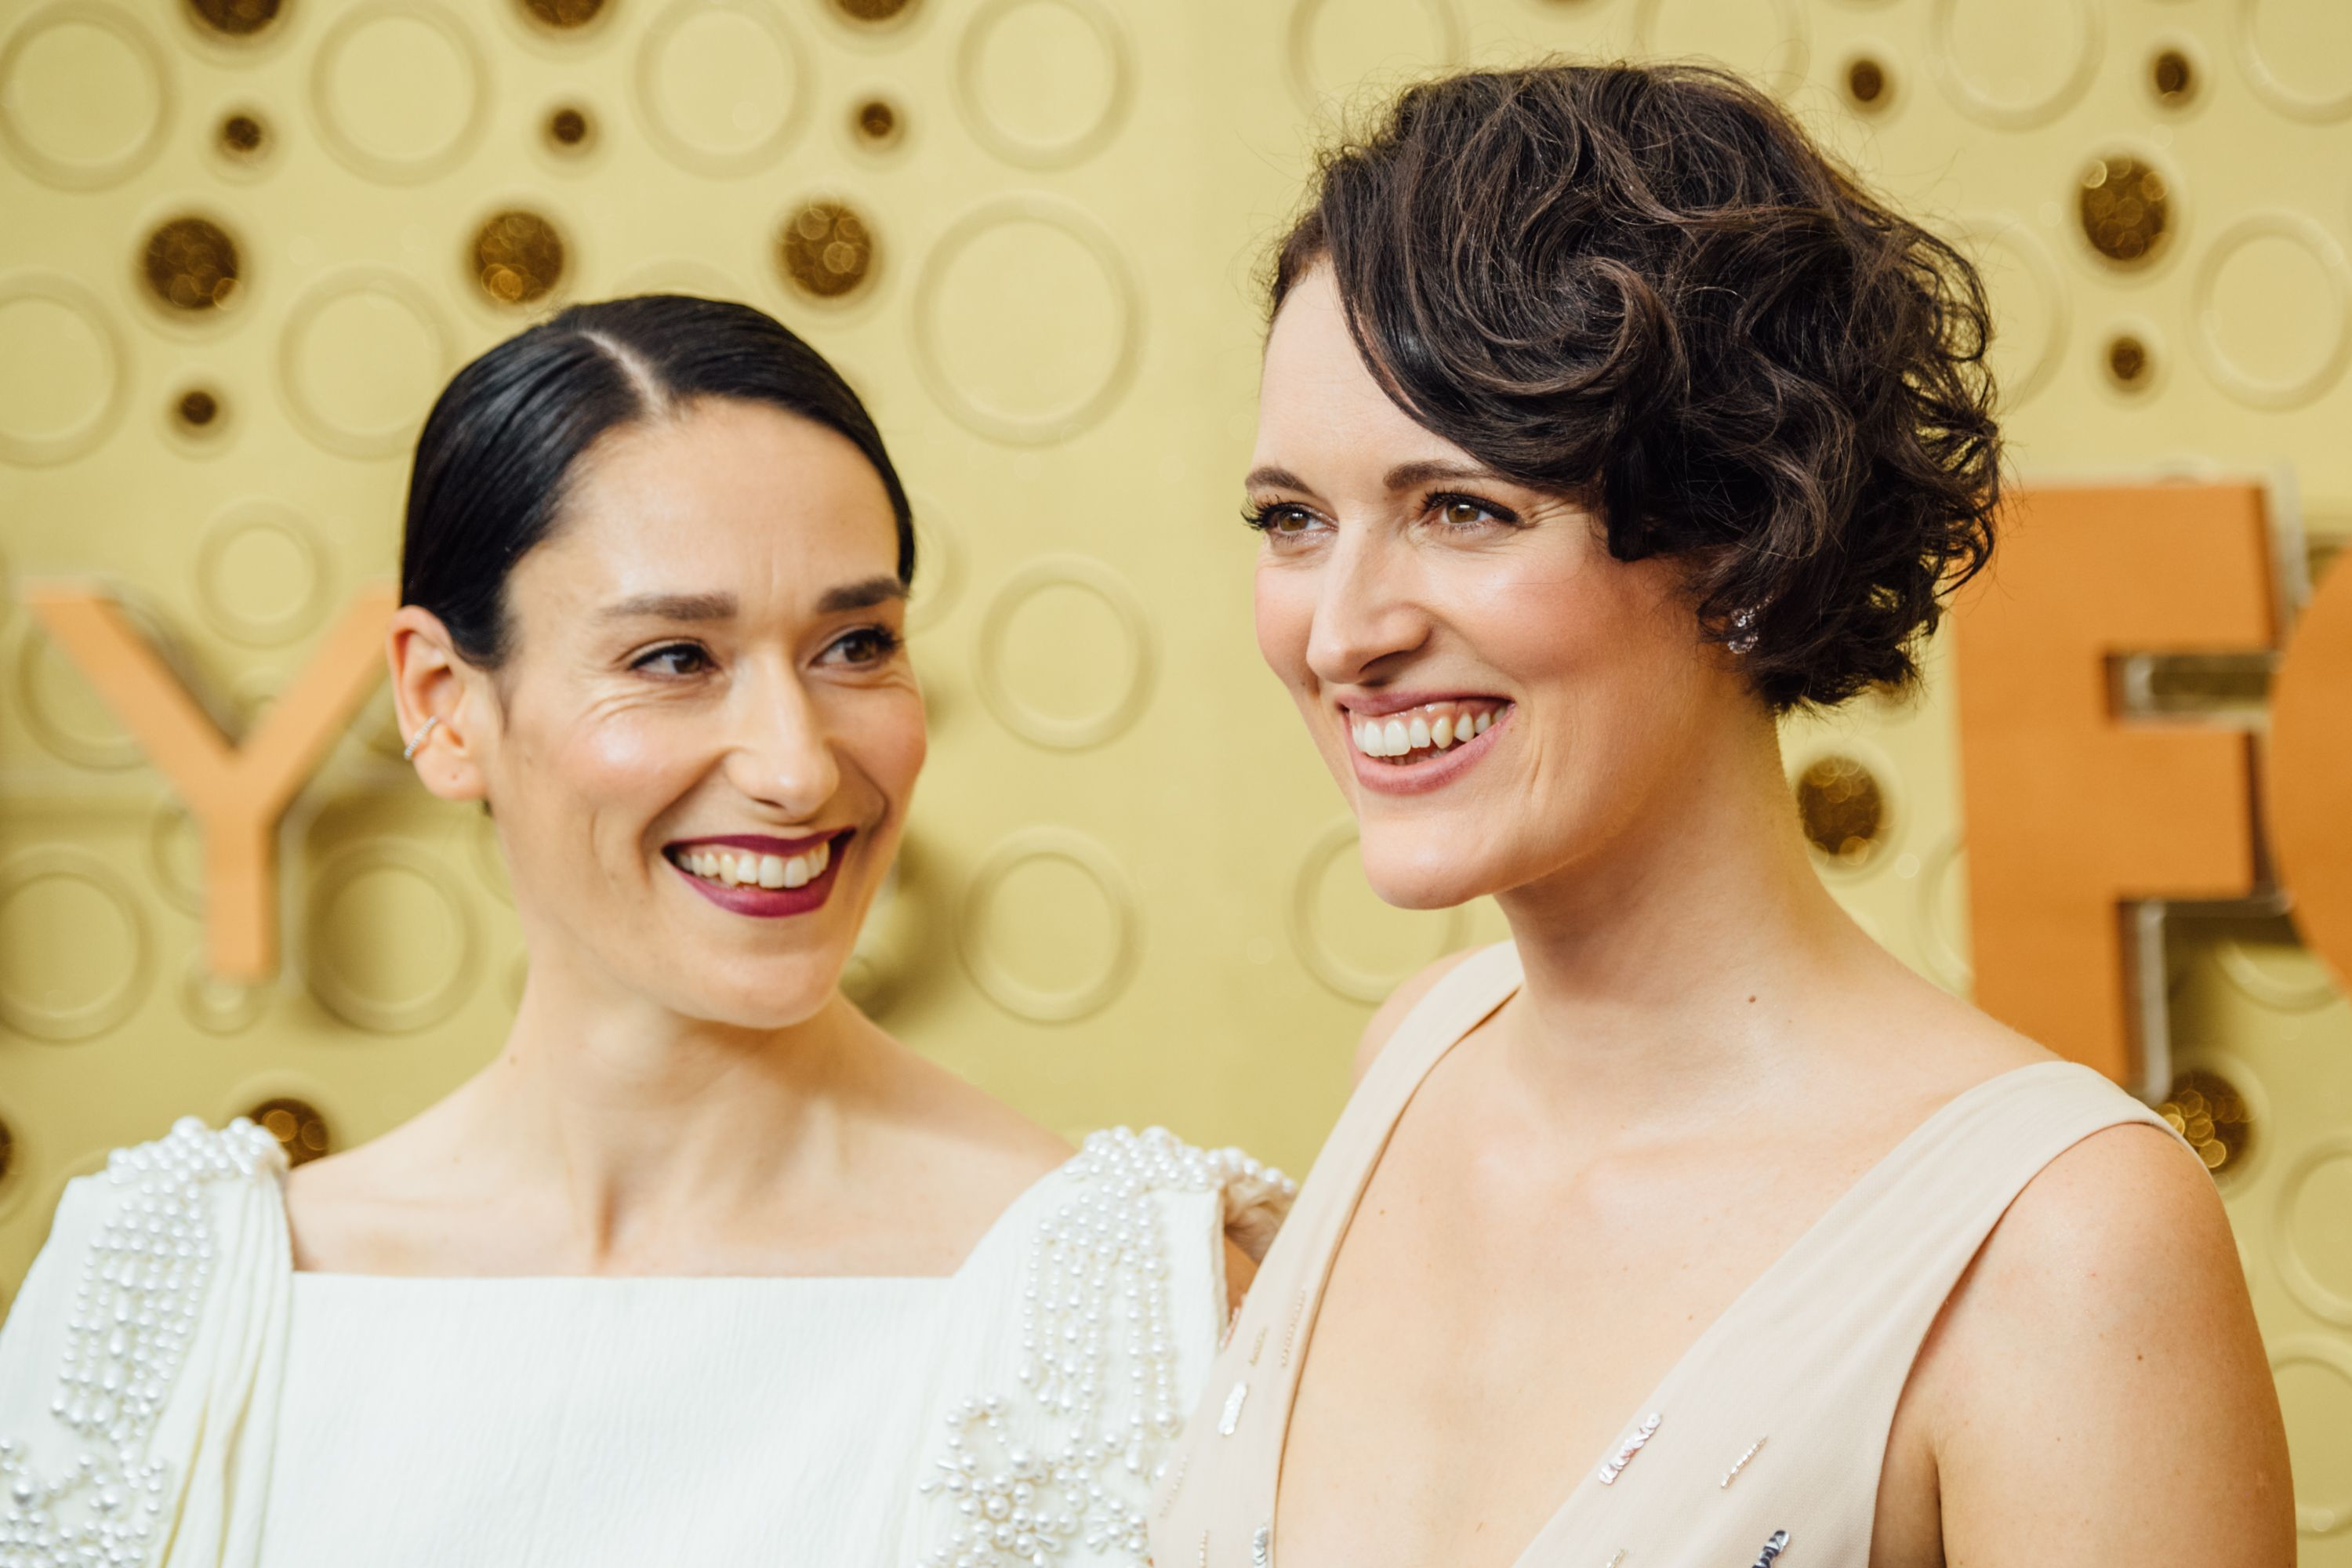 Fleabag's Sian Clifford received a very special gift from Phoebe Waller-Bridge after BAFTA win